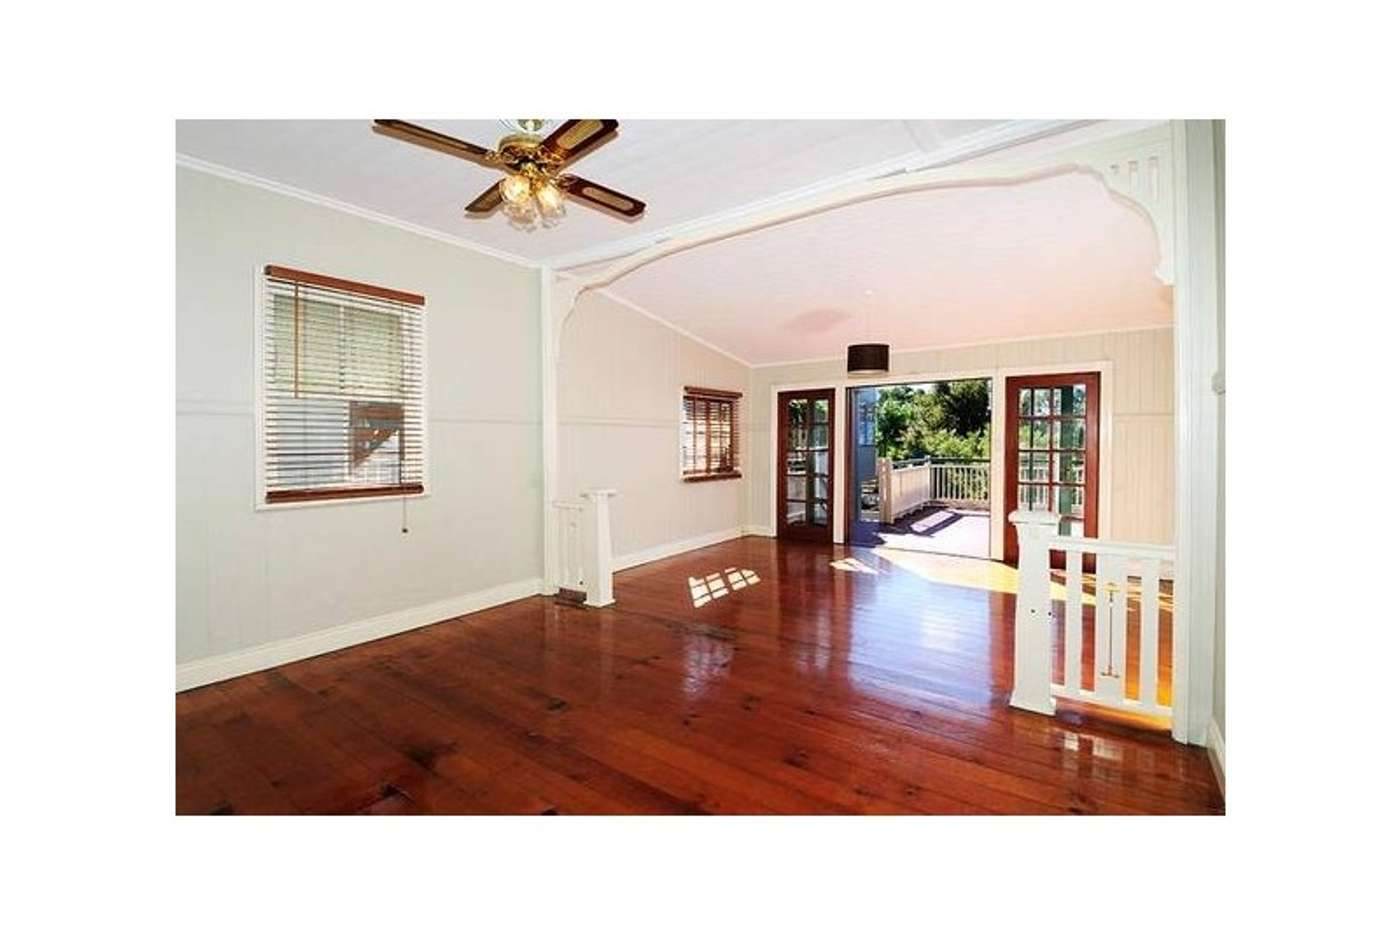 Seventh view of Homely house listing, 20 Leonard St, Woolloongabba QLD 4102